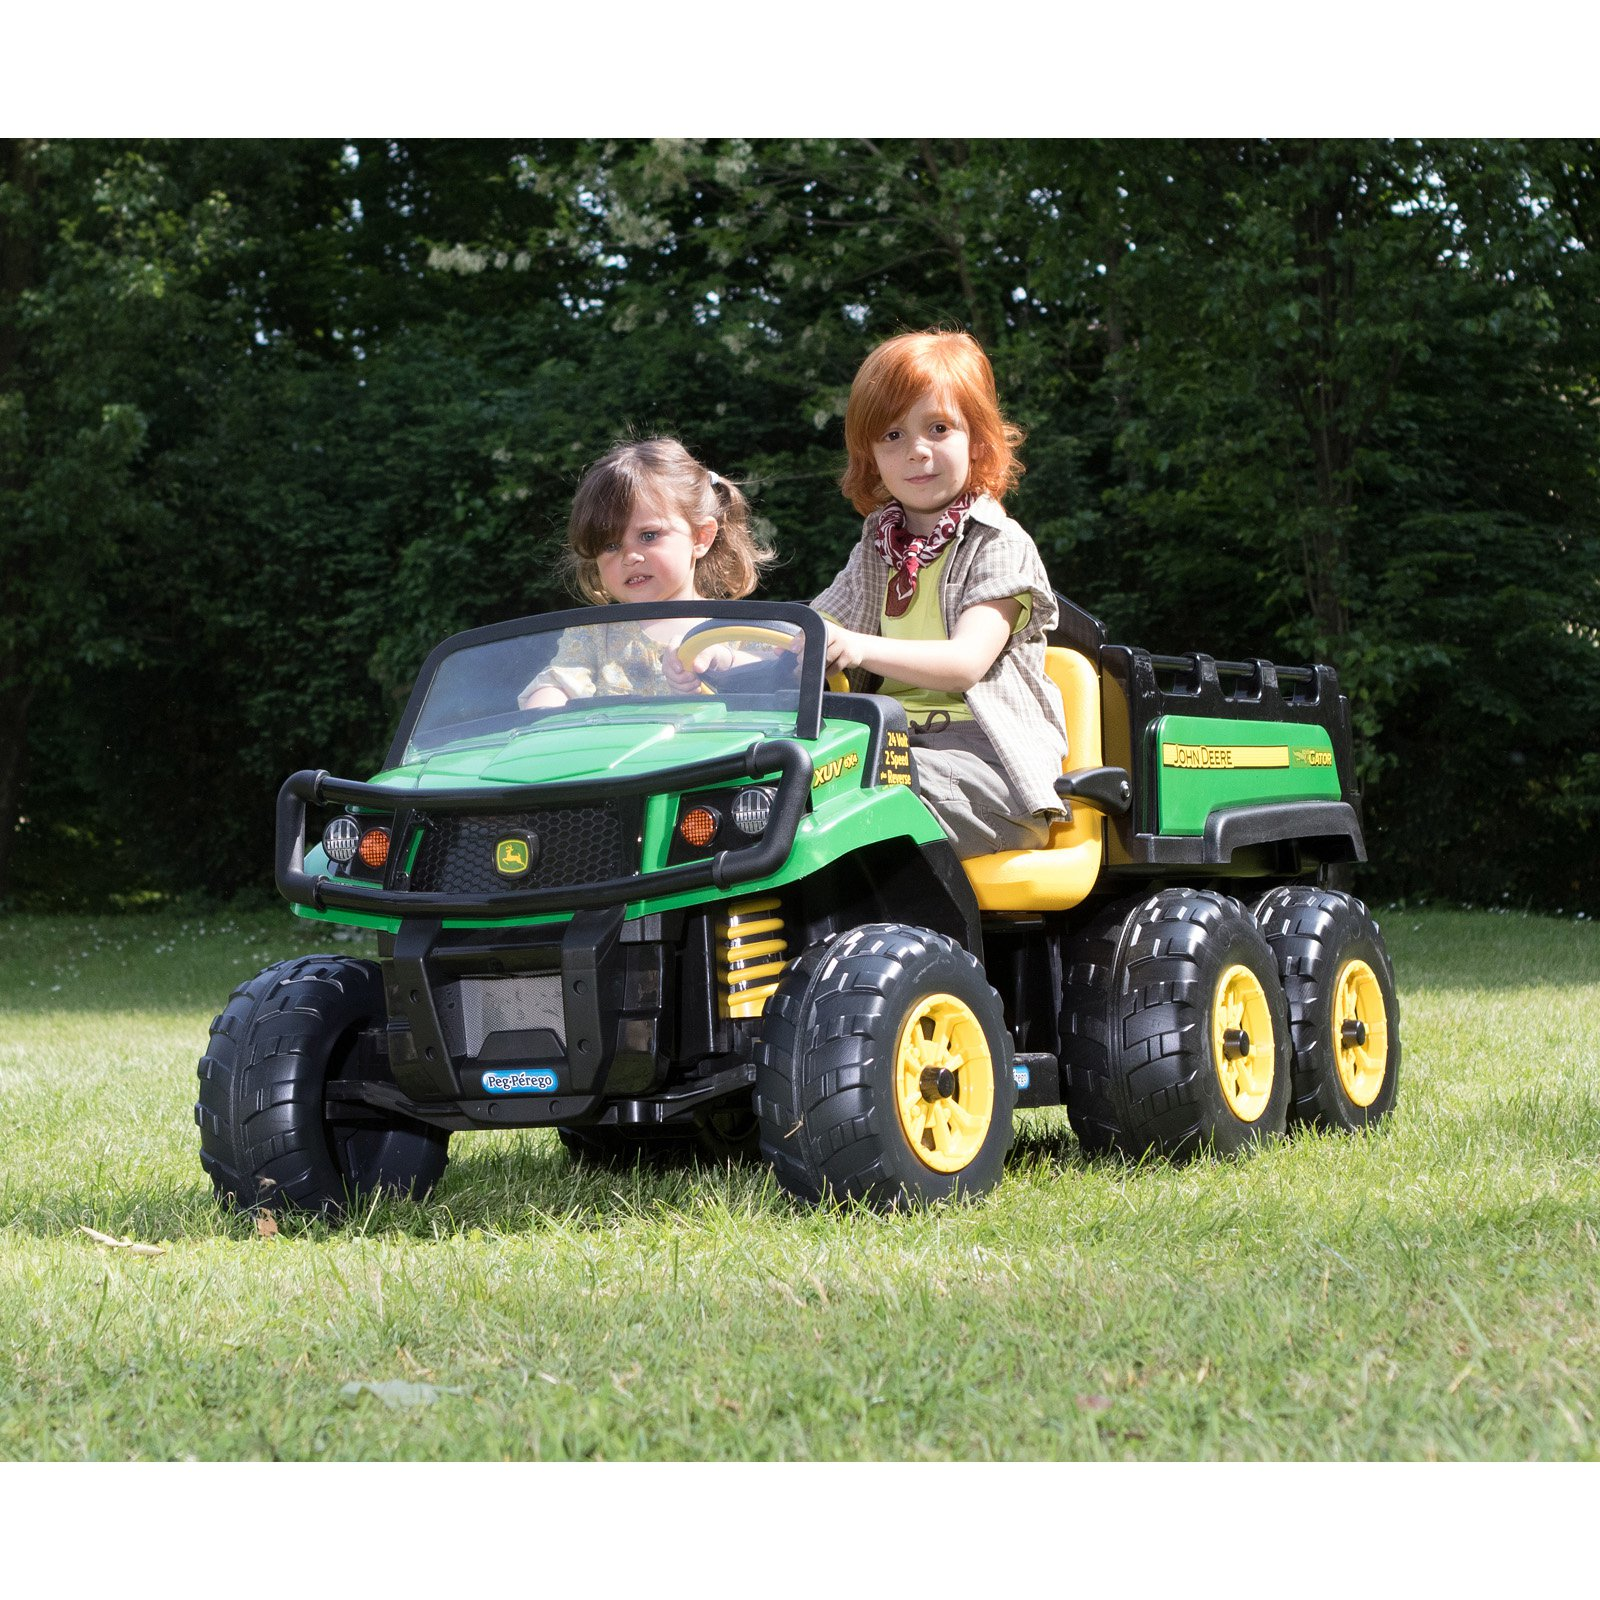 John Deere Gator XUV 6x4 Battery Powered Riding Toy